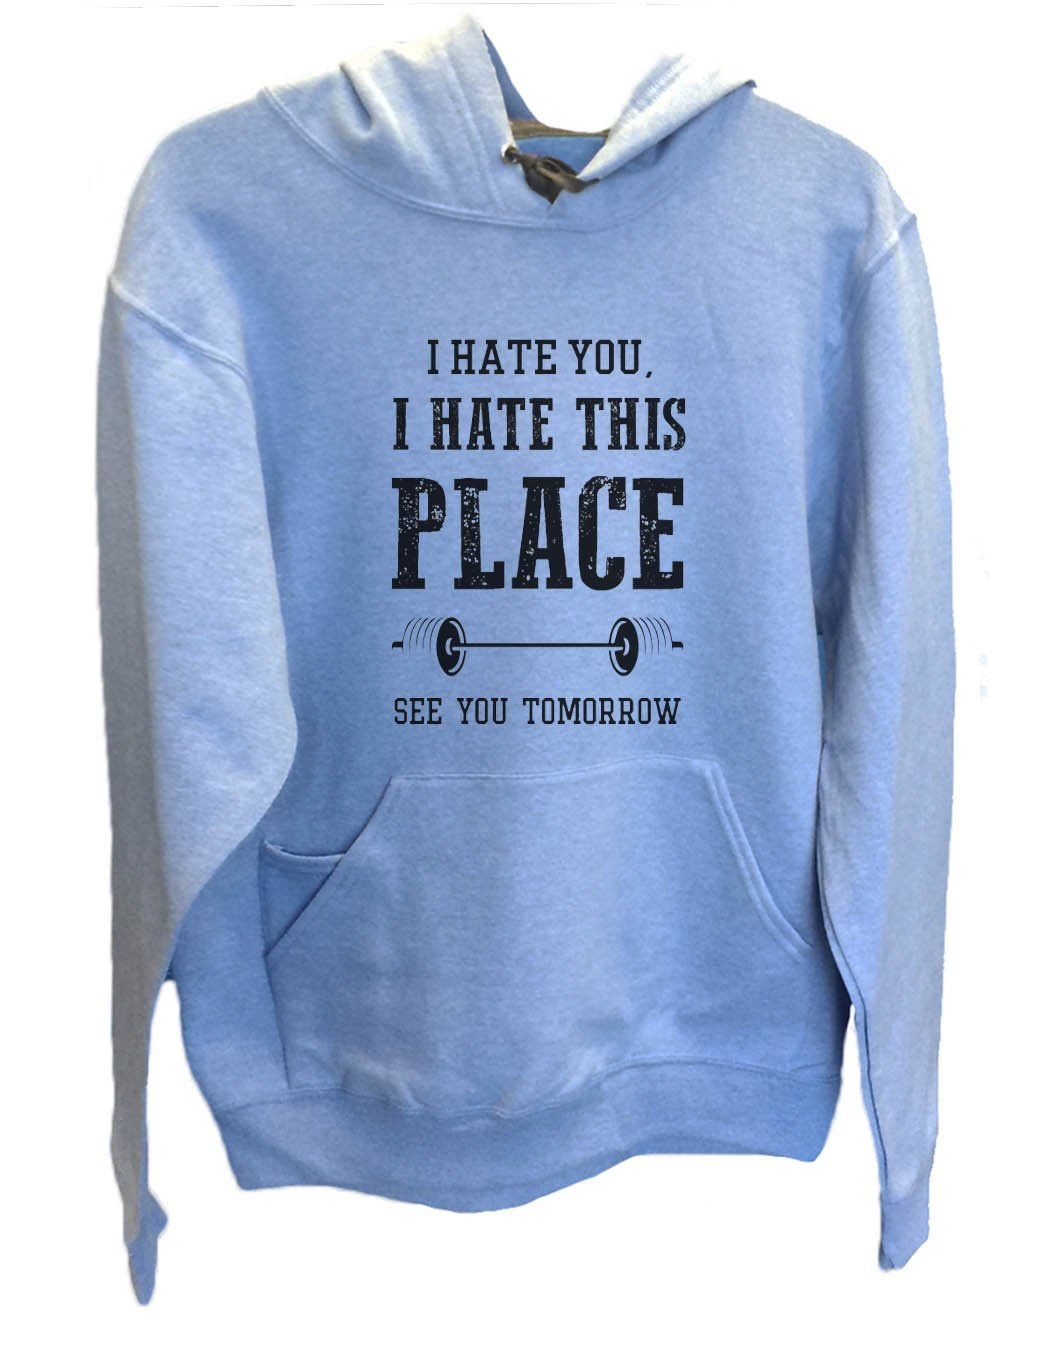 UNISEX HOODIE - I hate you, I hate this place See you tomorrow - FUNNY MENS AND WOMENS HOODED SWEATSHIRTS - 857 Funny Shirt Small / North Carolina Blue